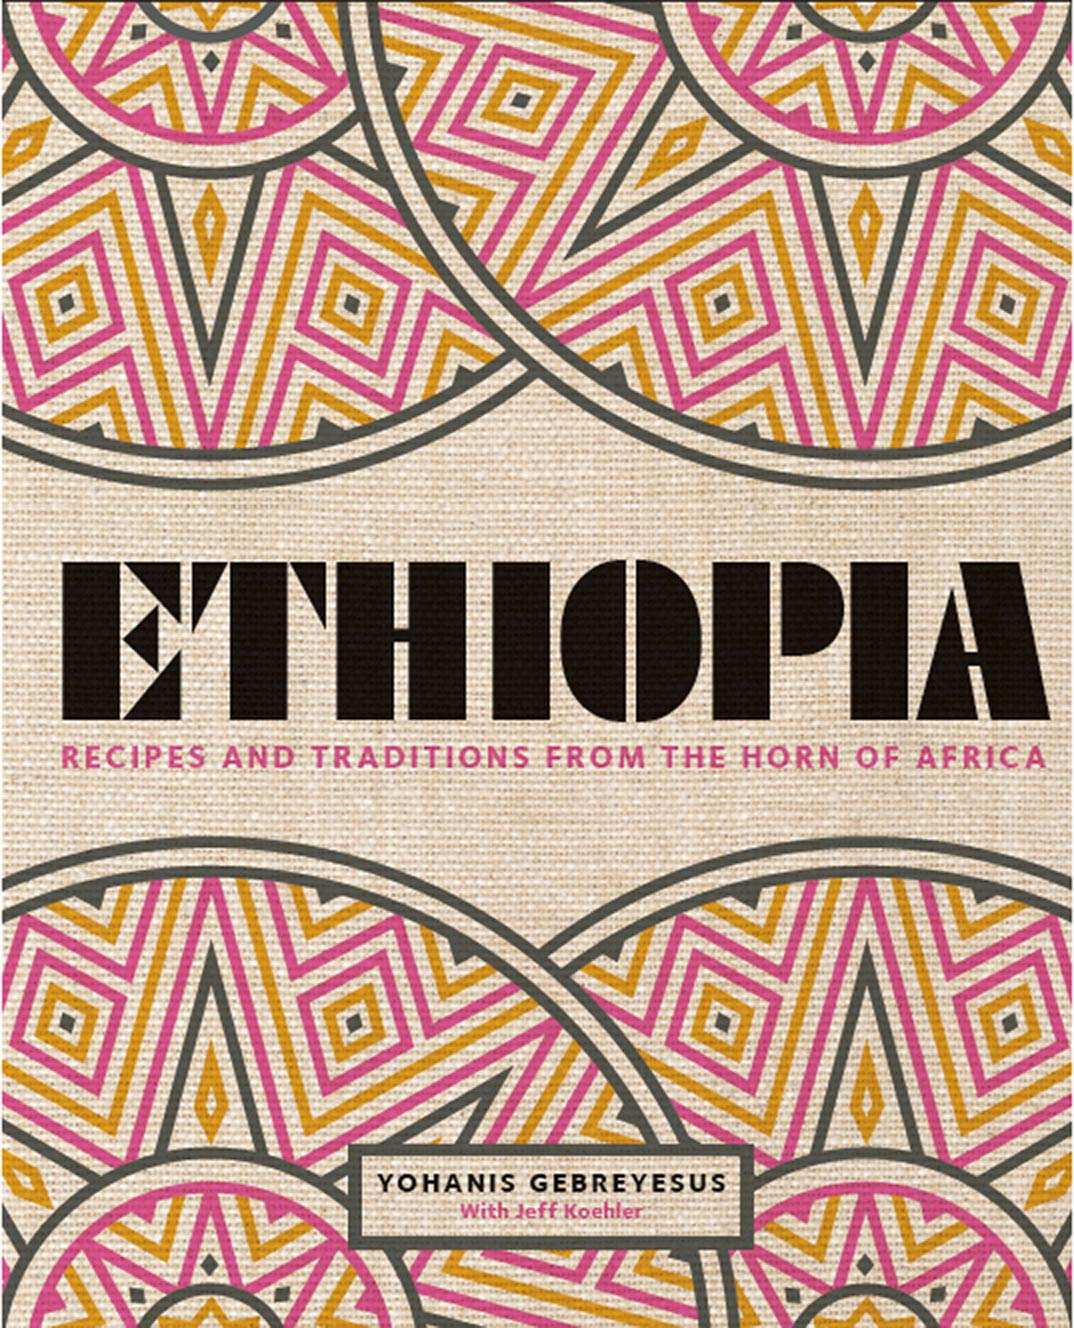 (African) Yohanis Gebreyesus. Ethiopia: Recipes and Traditions from the Horn of Africa